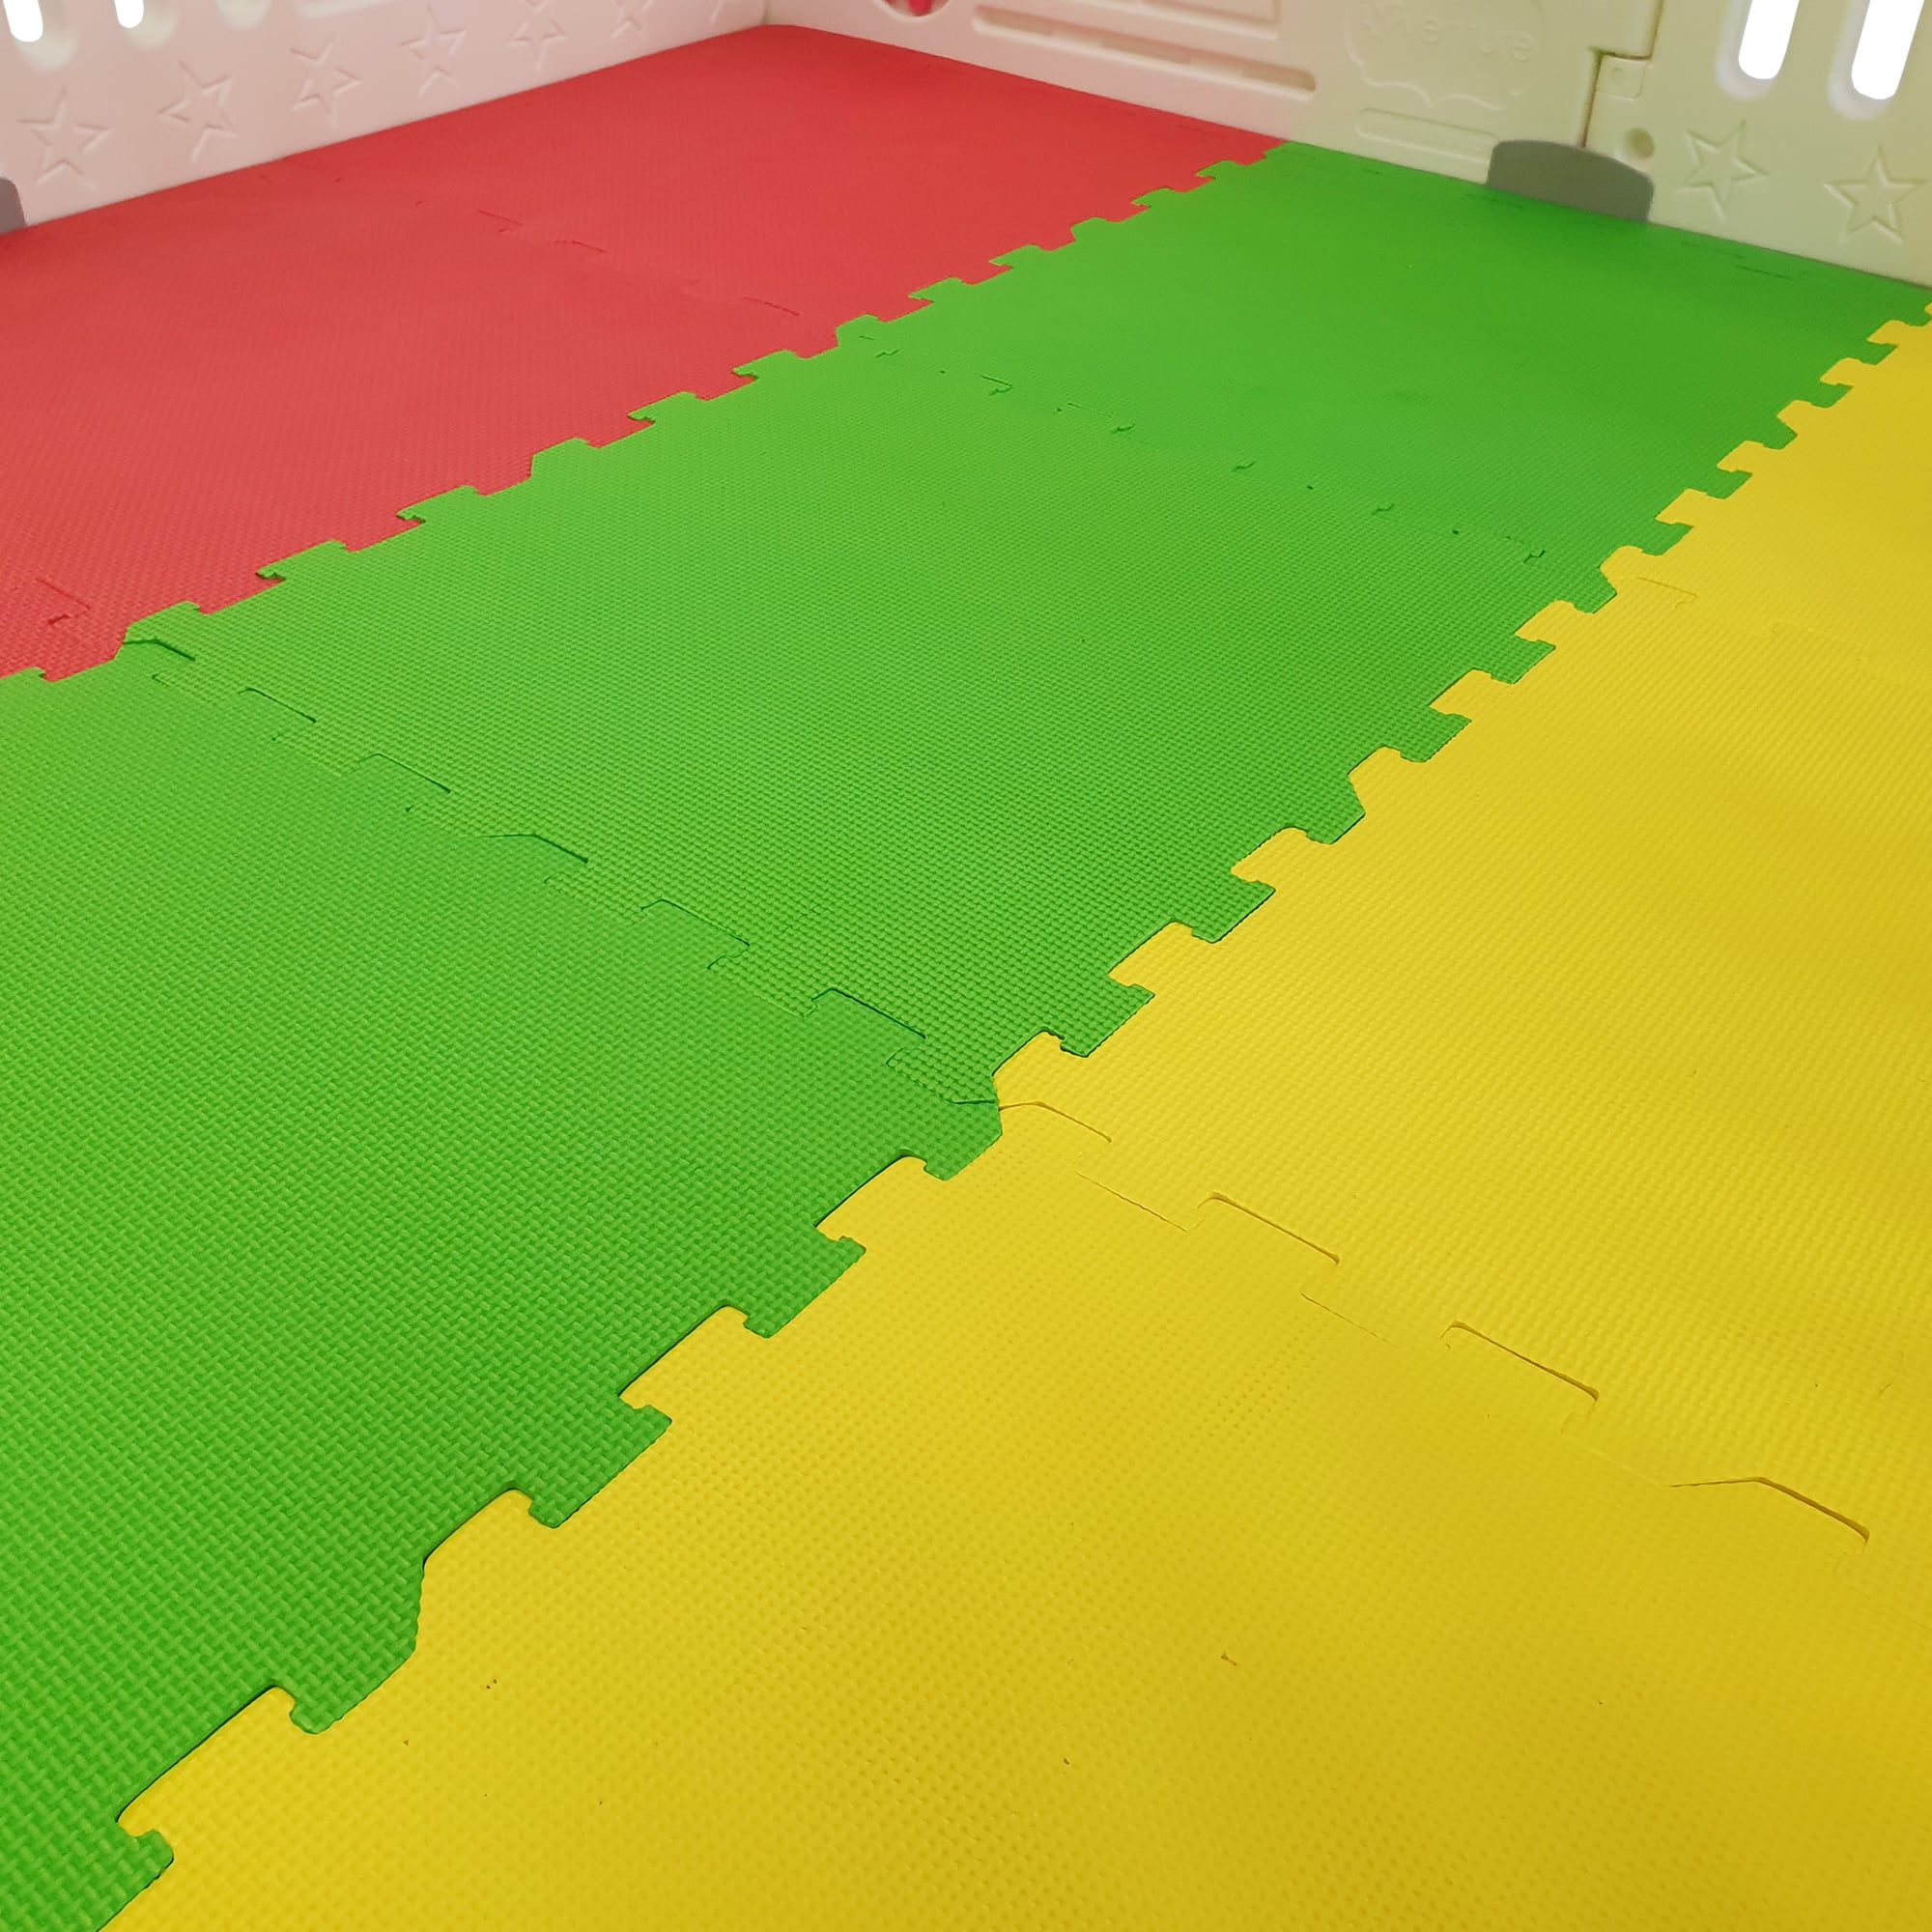 Our PVA foam mats are made from child safe materials.